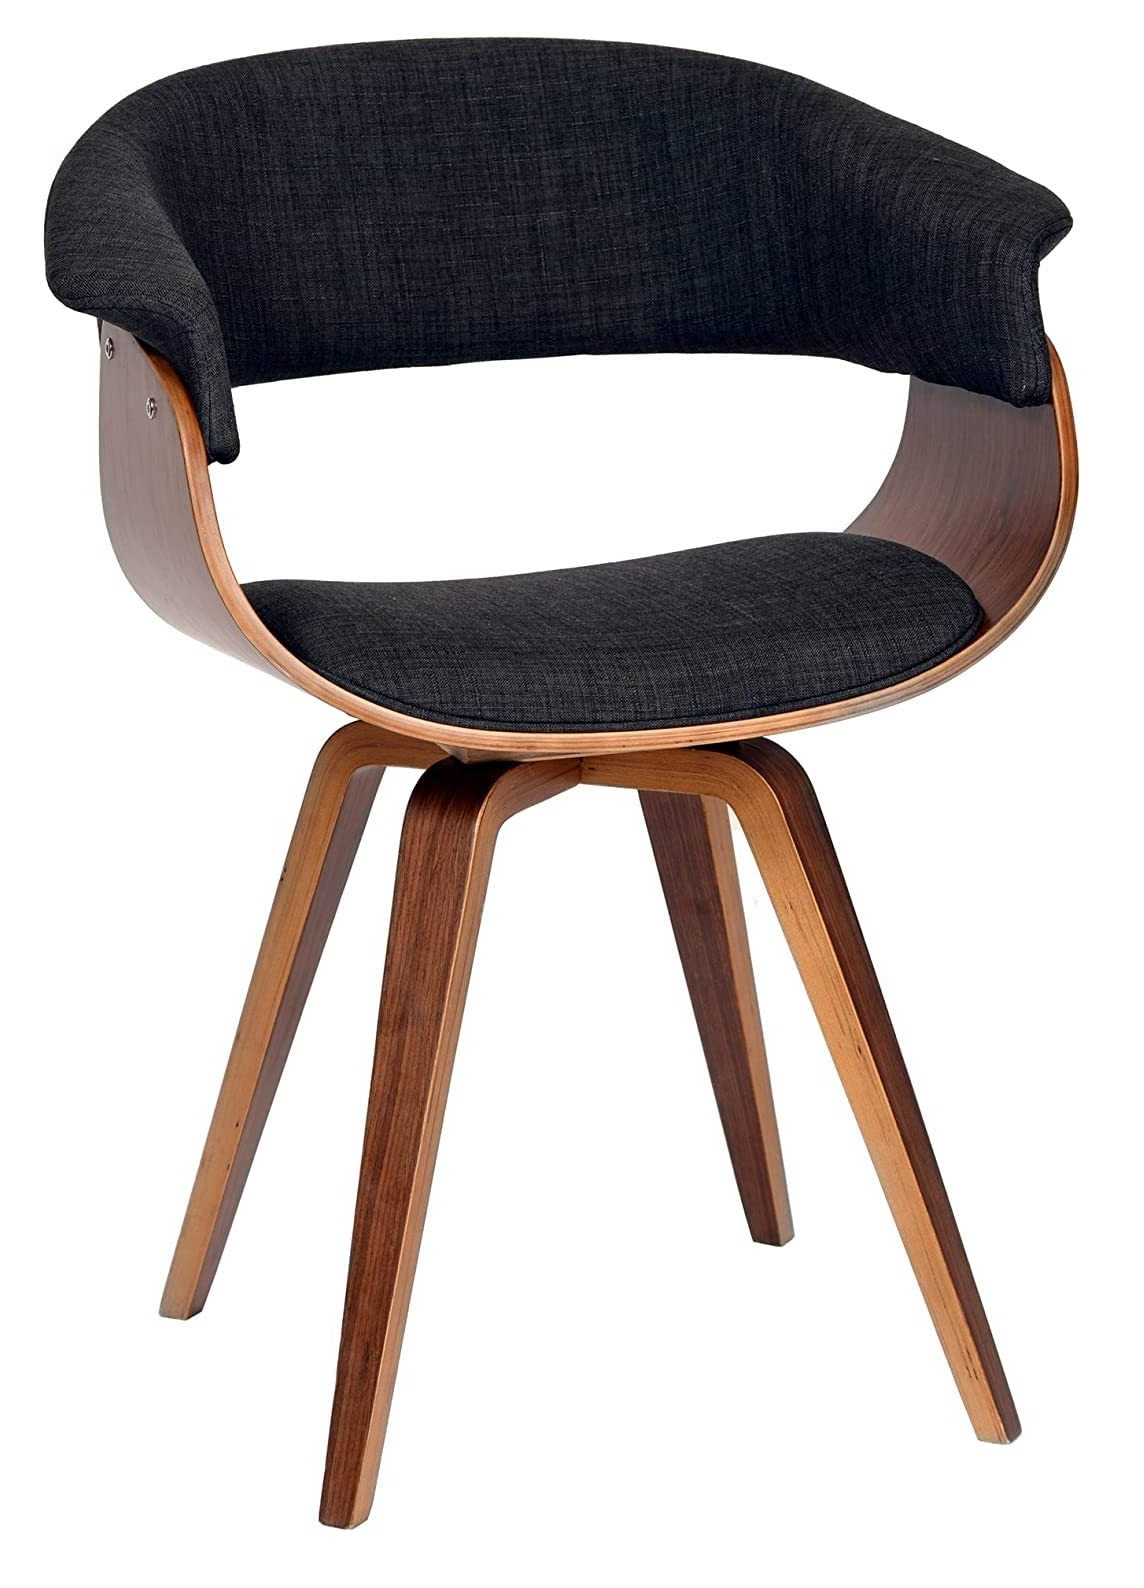 Best favorit on 2021 Mid-Century Armen Minimalist livingroom contemporary Chair with charcoal fabric and Walnut wood finish